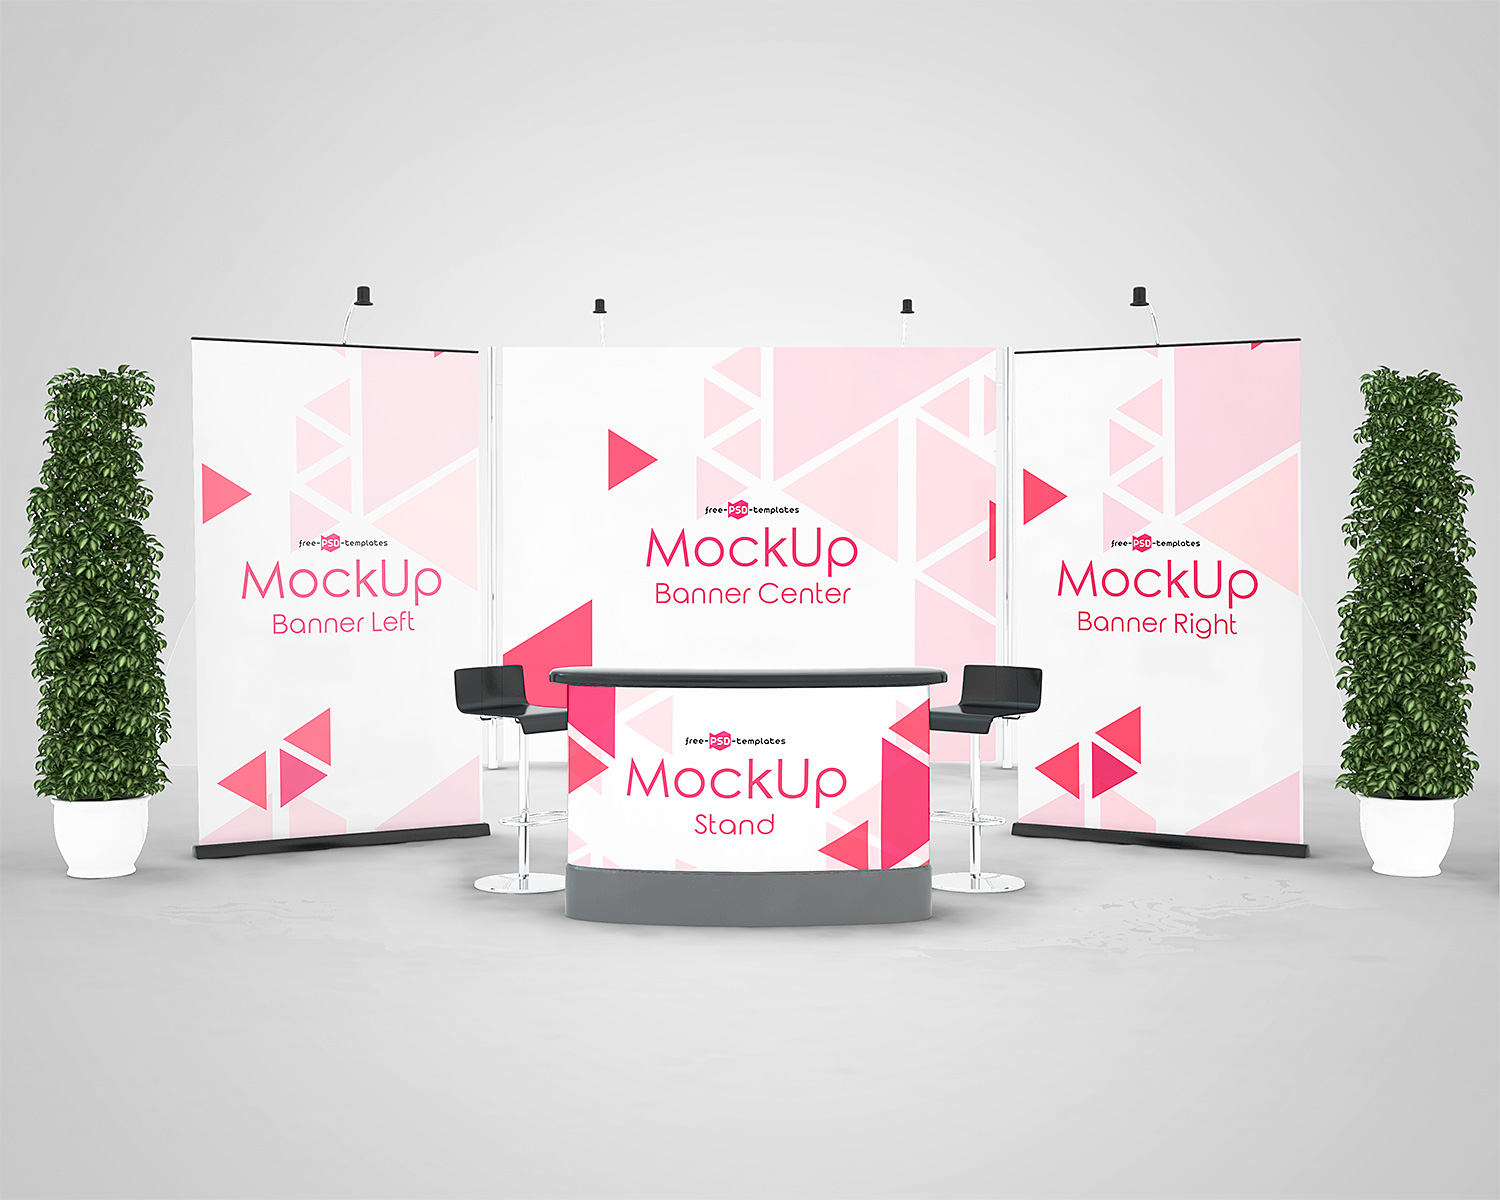 Exhibition Stand Design Mockup Free : Exposition stand mockup composition download free vector art